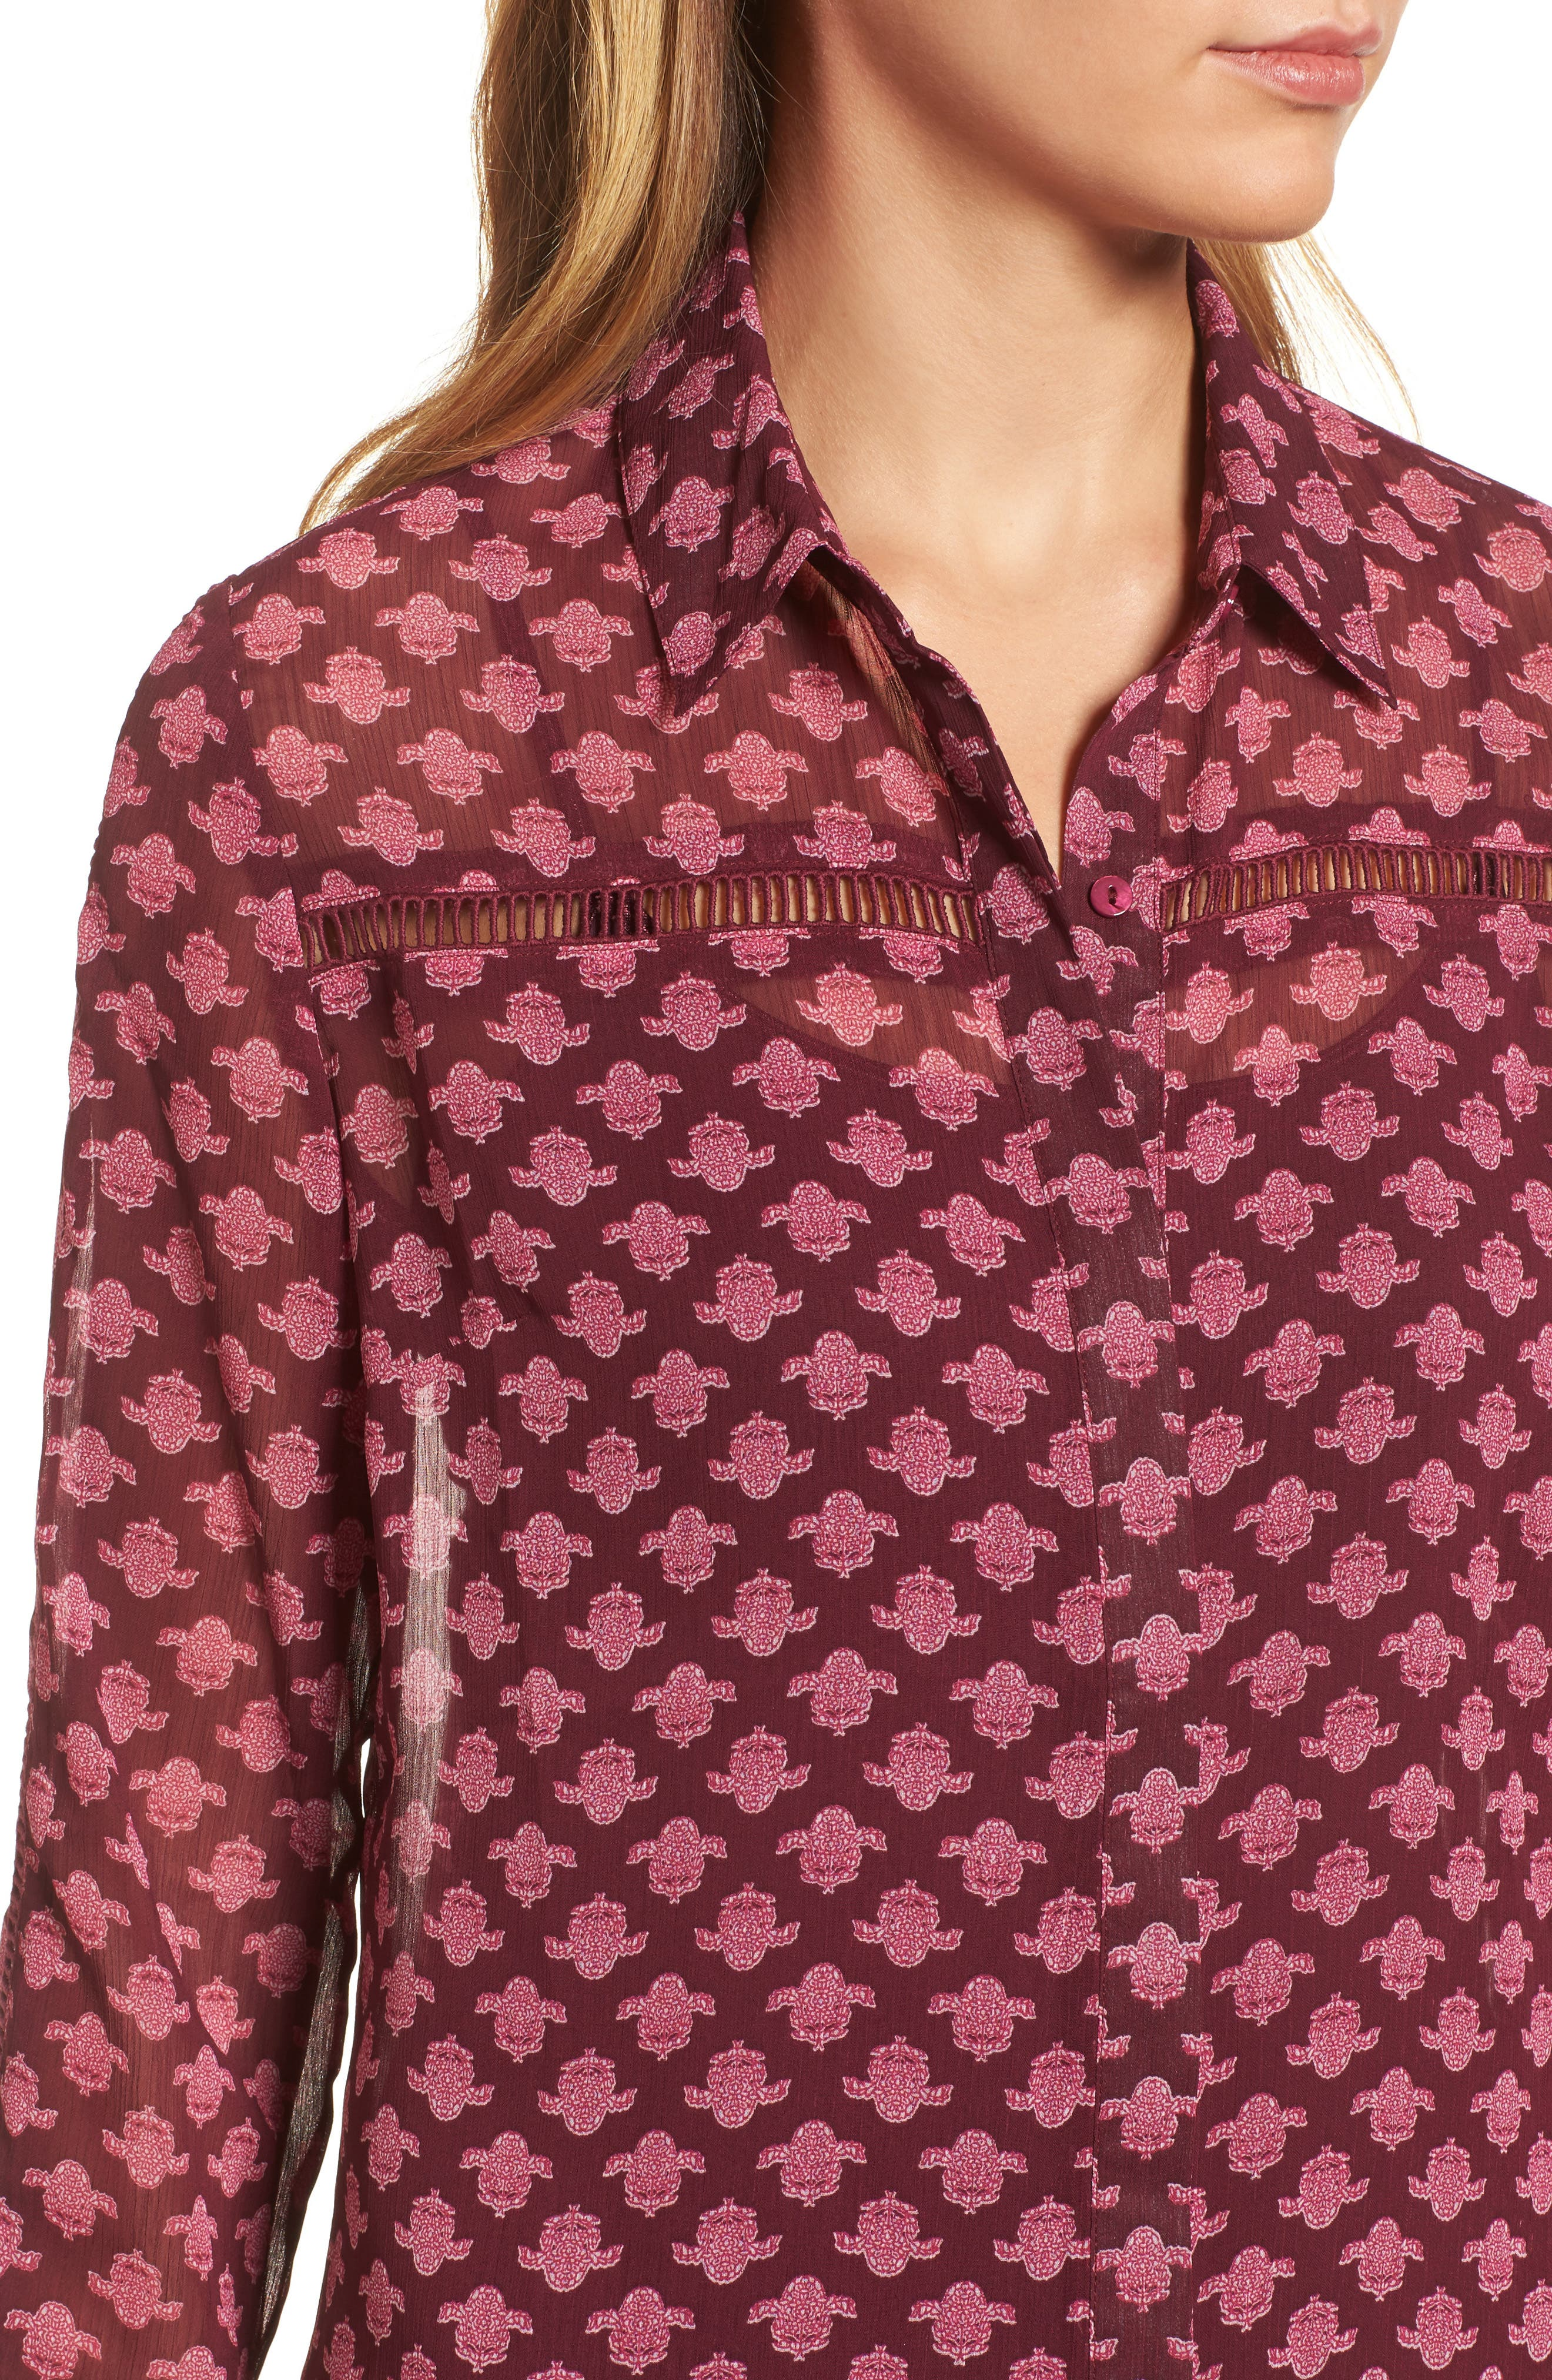 Eve Print Semi-Sheer Blouse,                             Alternate thumbnail 4, color,                             Dark Berry